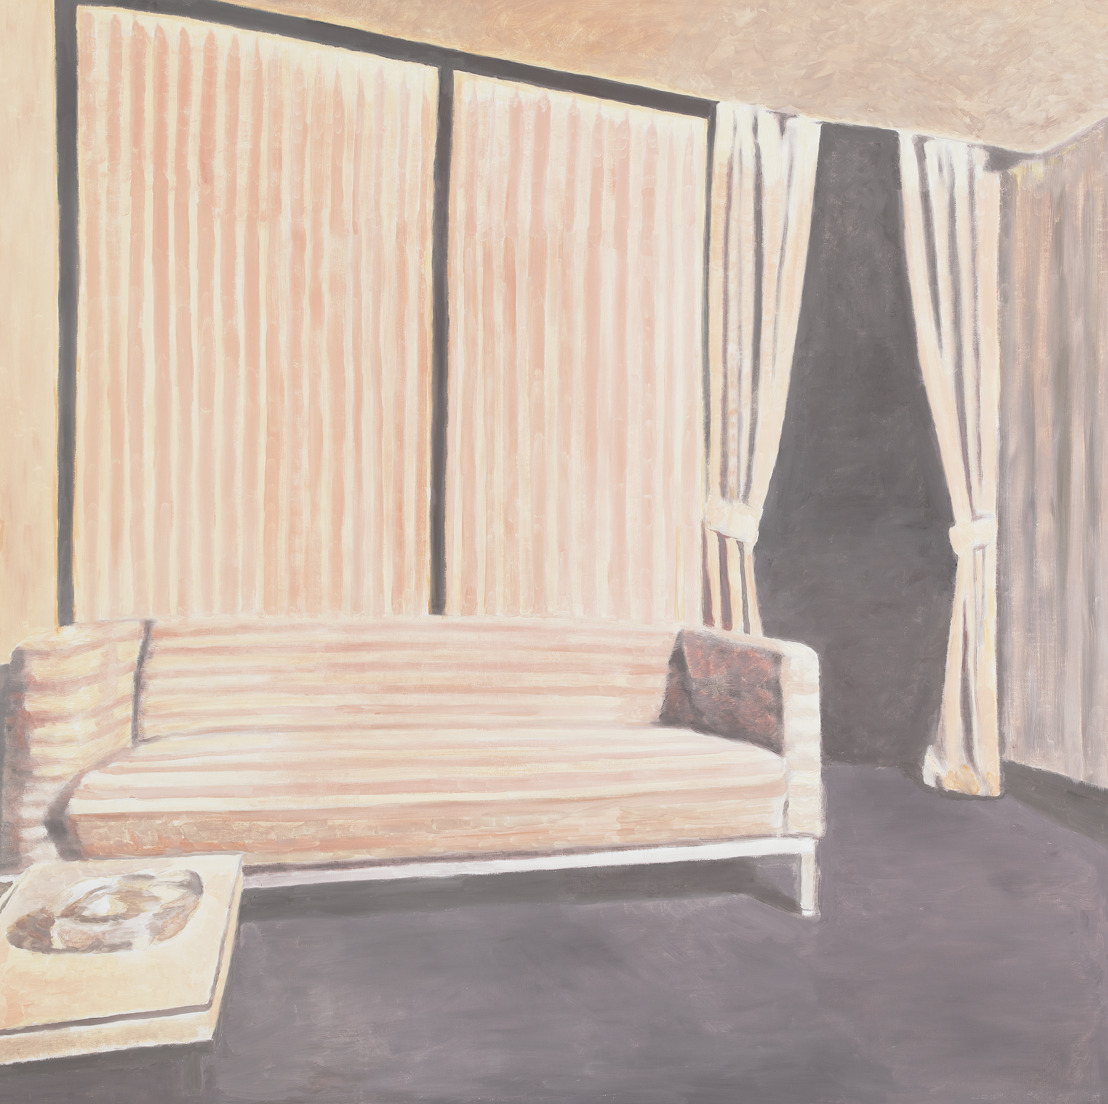 The 7th Biennial of Painting focuses on the Inner Spaces